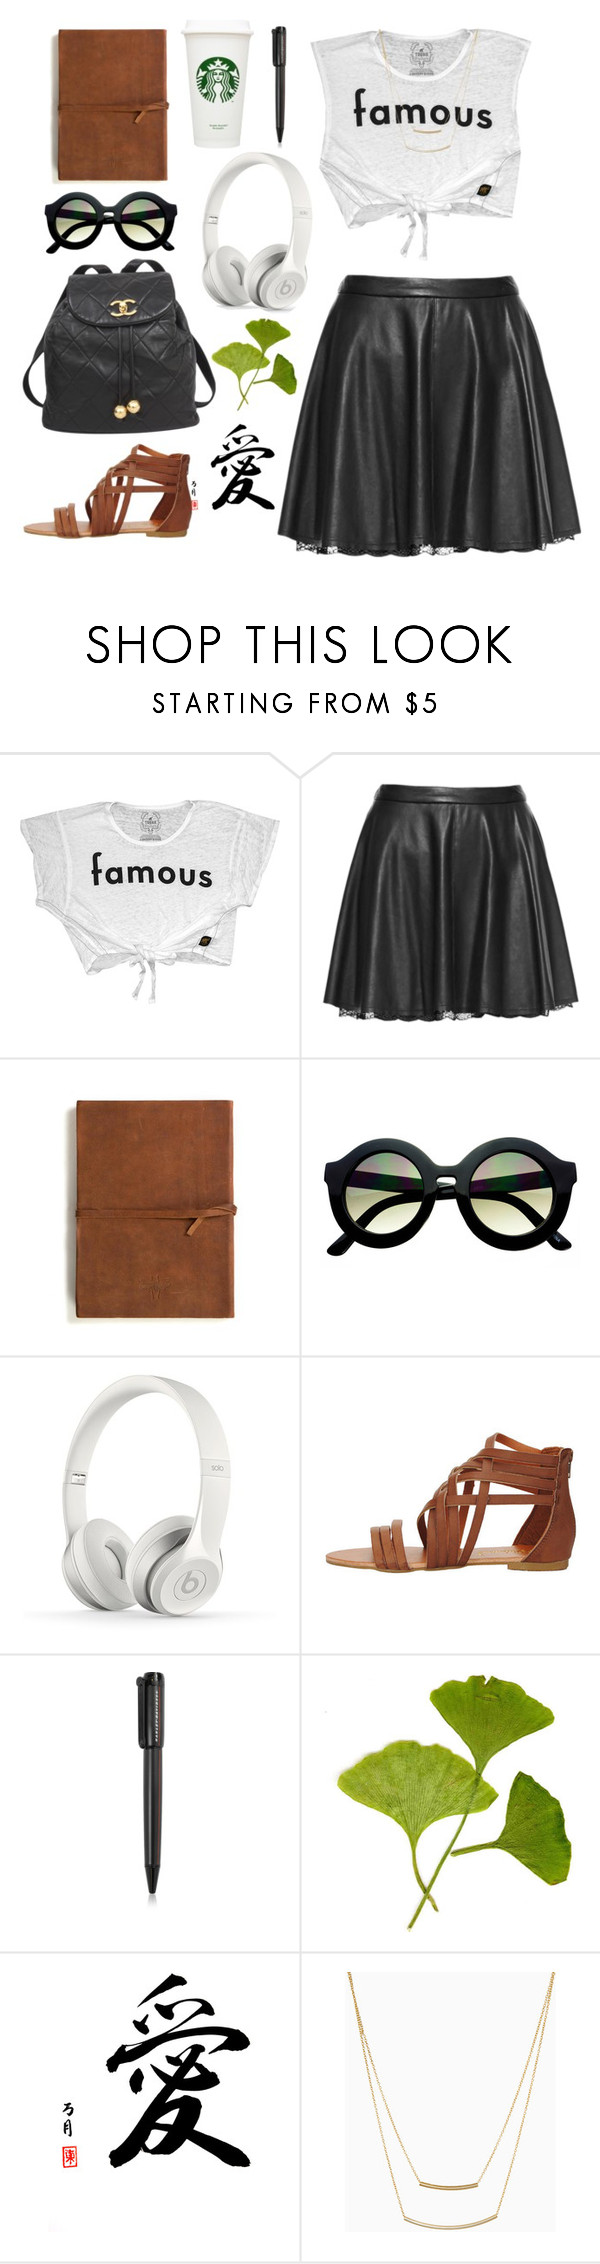 """""""Hollywood here I come"""" by jewelspiration ❤ liked on Polyvore featuring Trunk LTD, Alice + Olivia, Emili, Retrò, Chanel, Beats by Dr. Dre, Harley-Davidson, DailyLook, Leather and FAmous"""